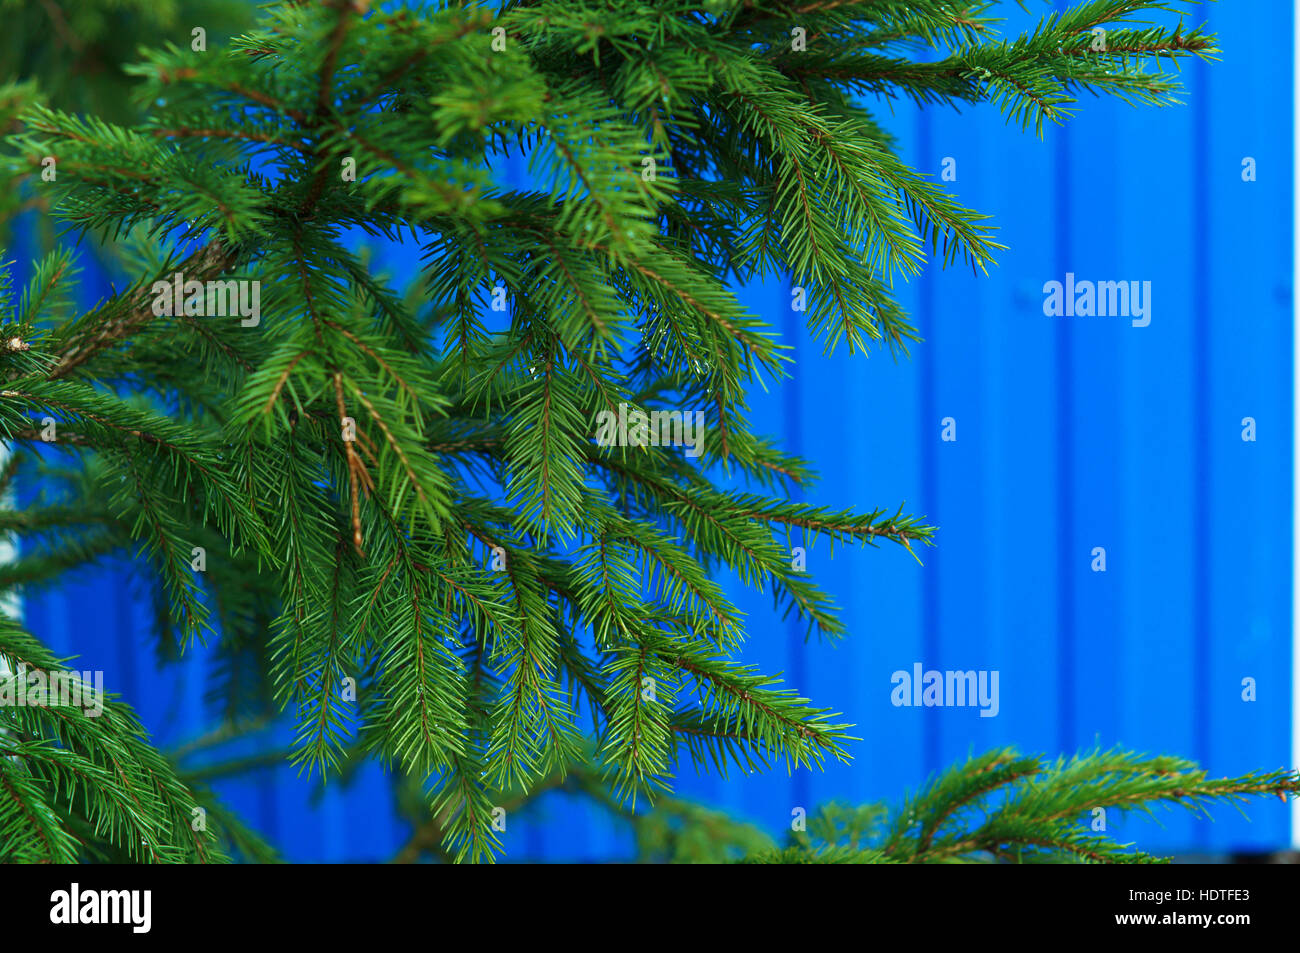 spruce branch on a blue background, tree, blue color - Stock Image